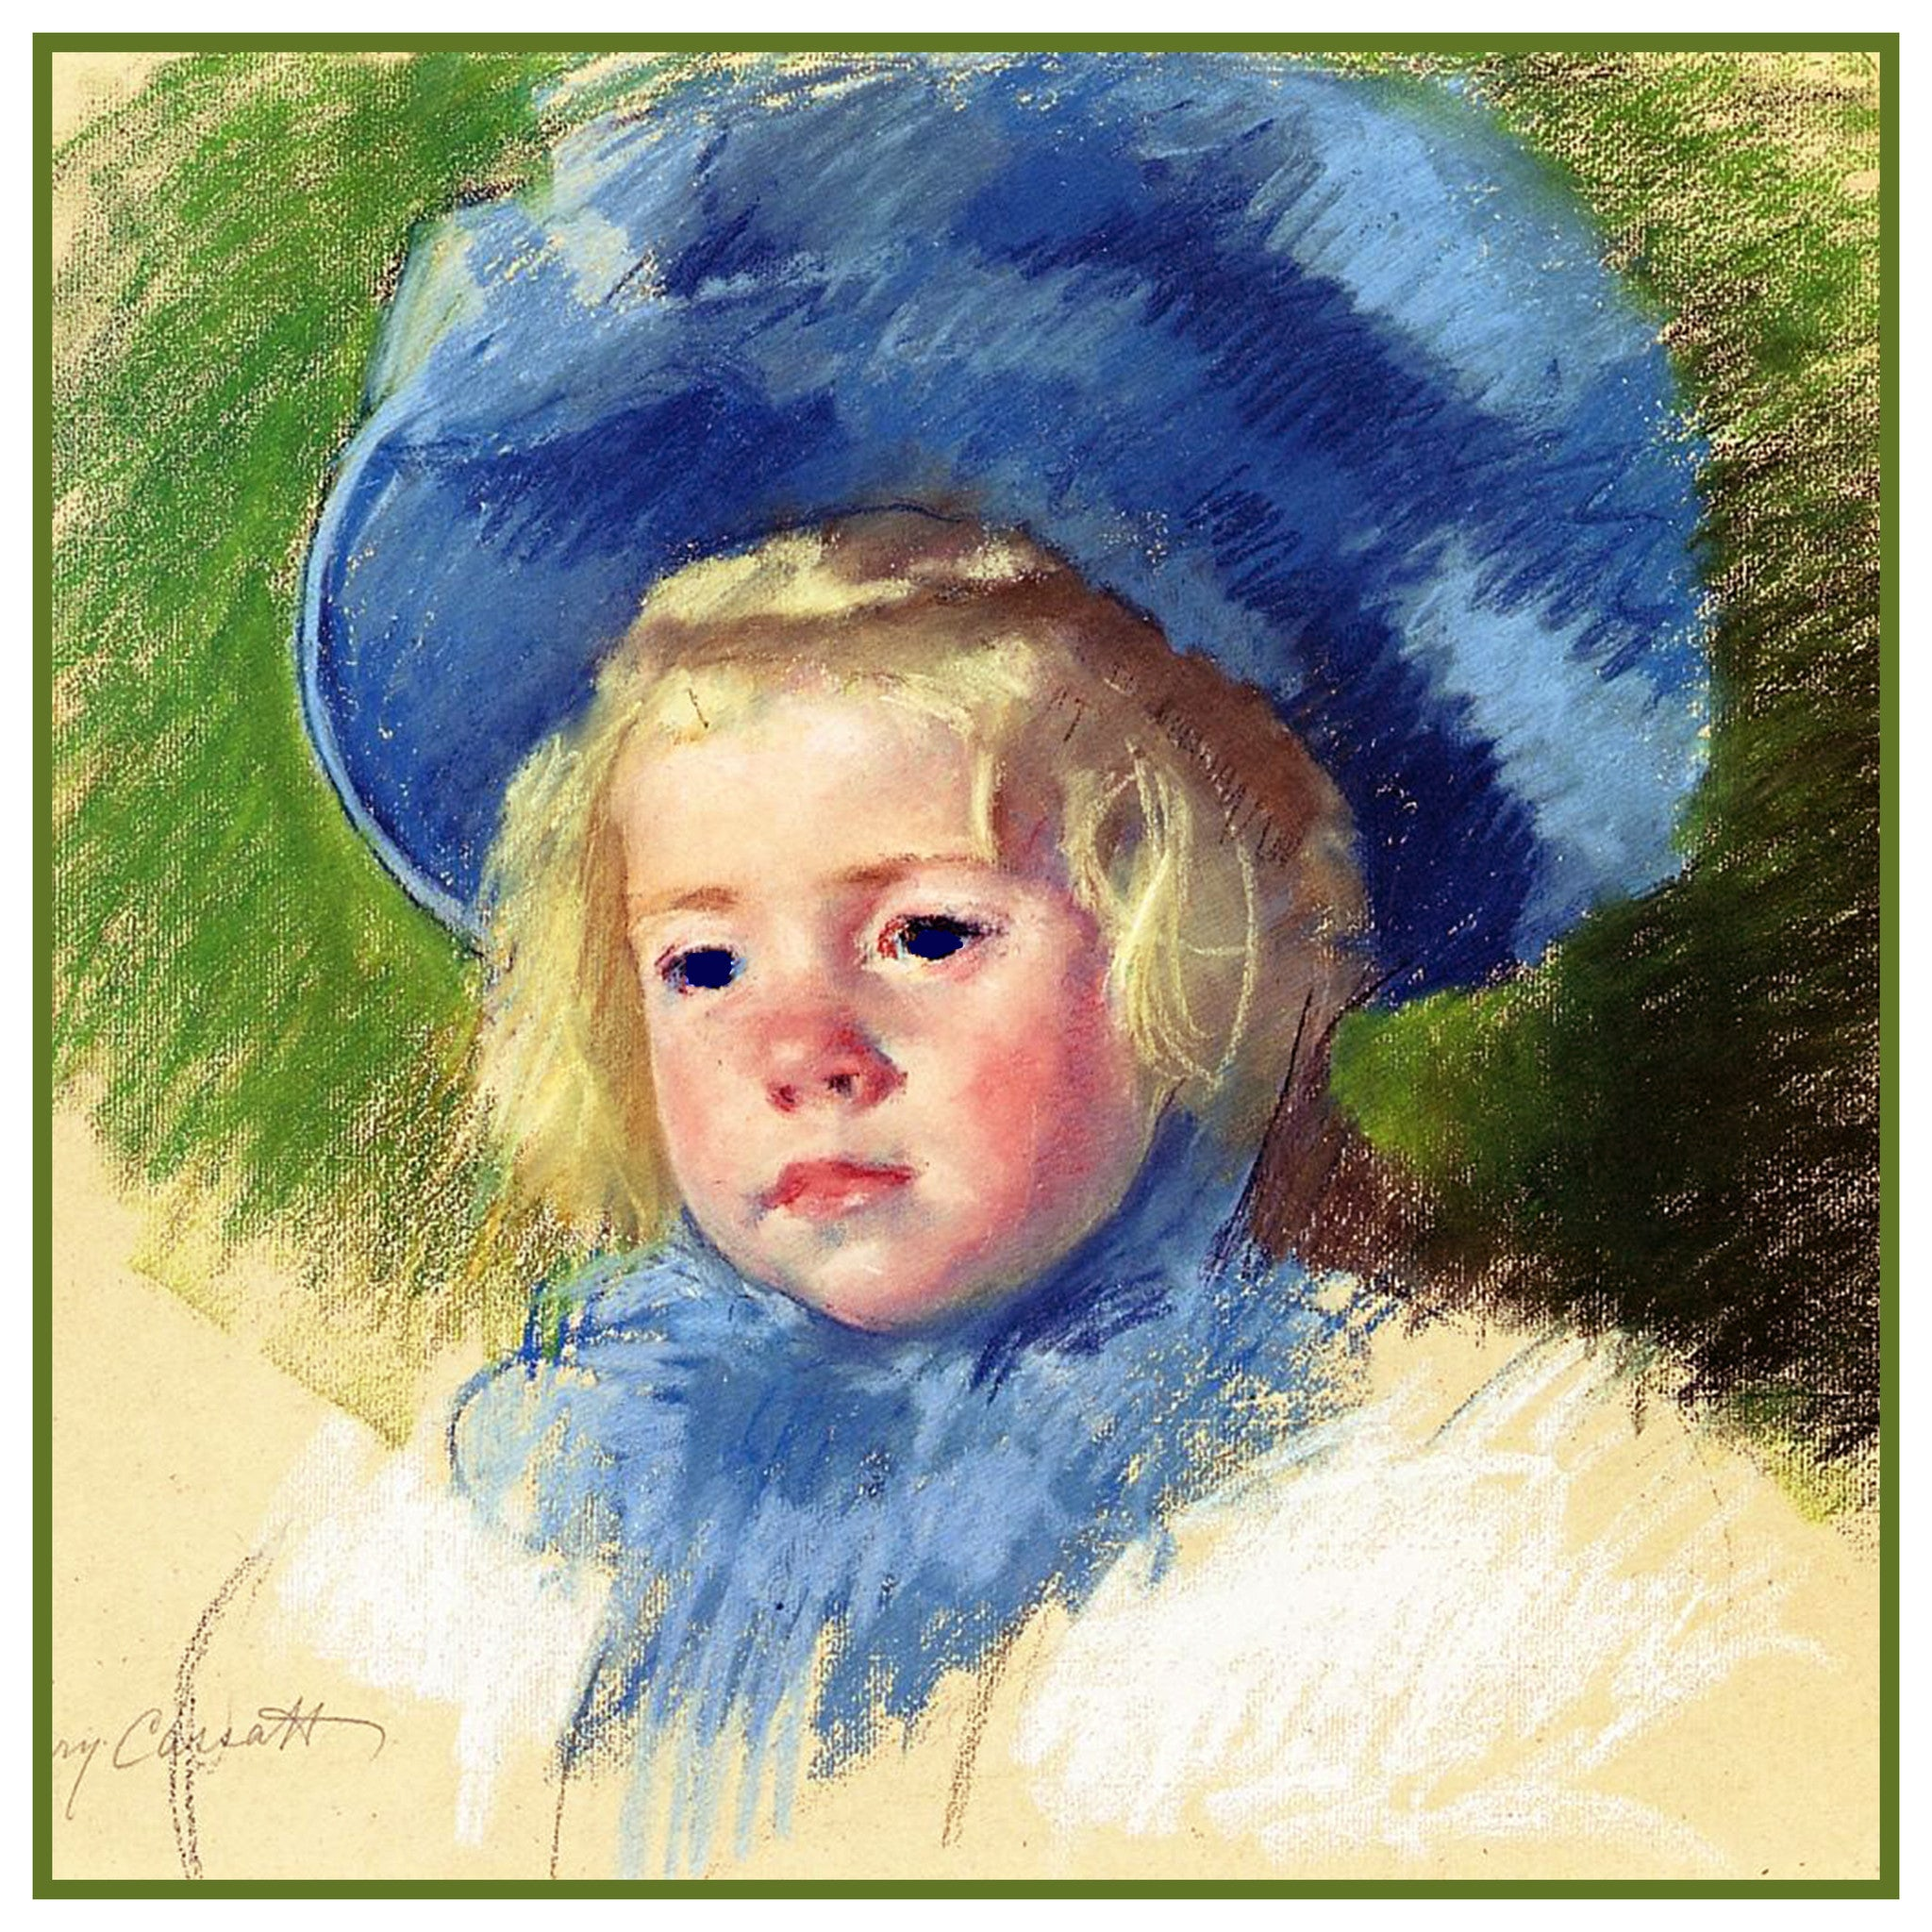 Simone And Her Blue Hat By American Impressionist Artist Mary Cassatt Counted Cross Stitch Or Needlepoint Pattern